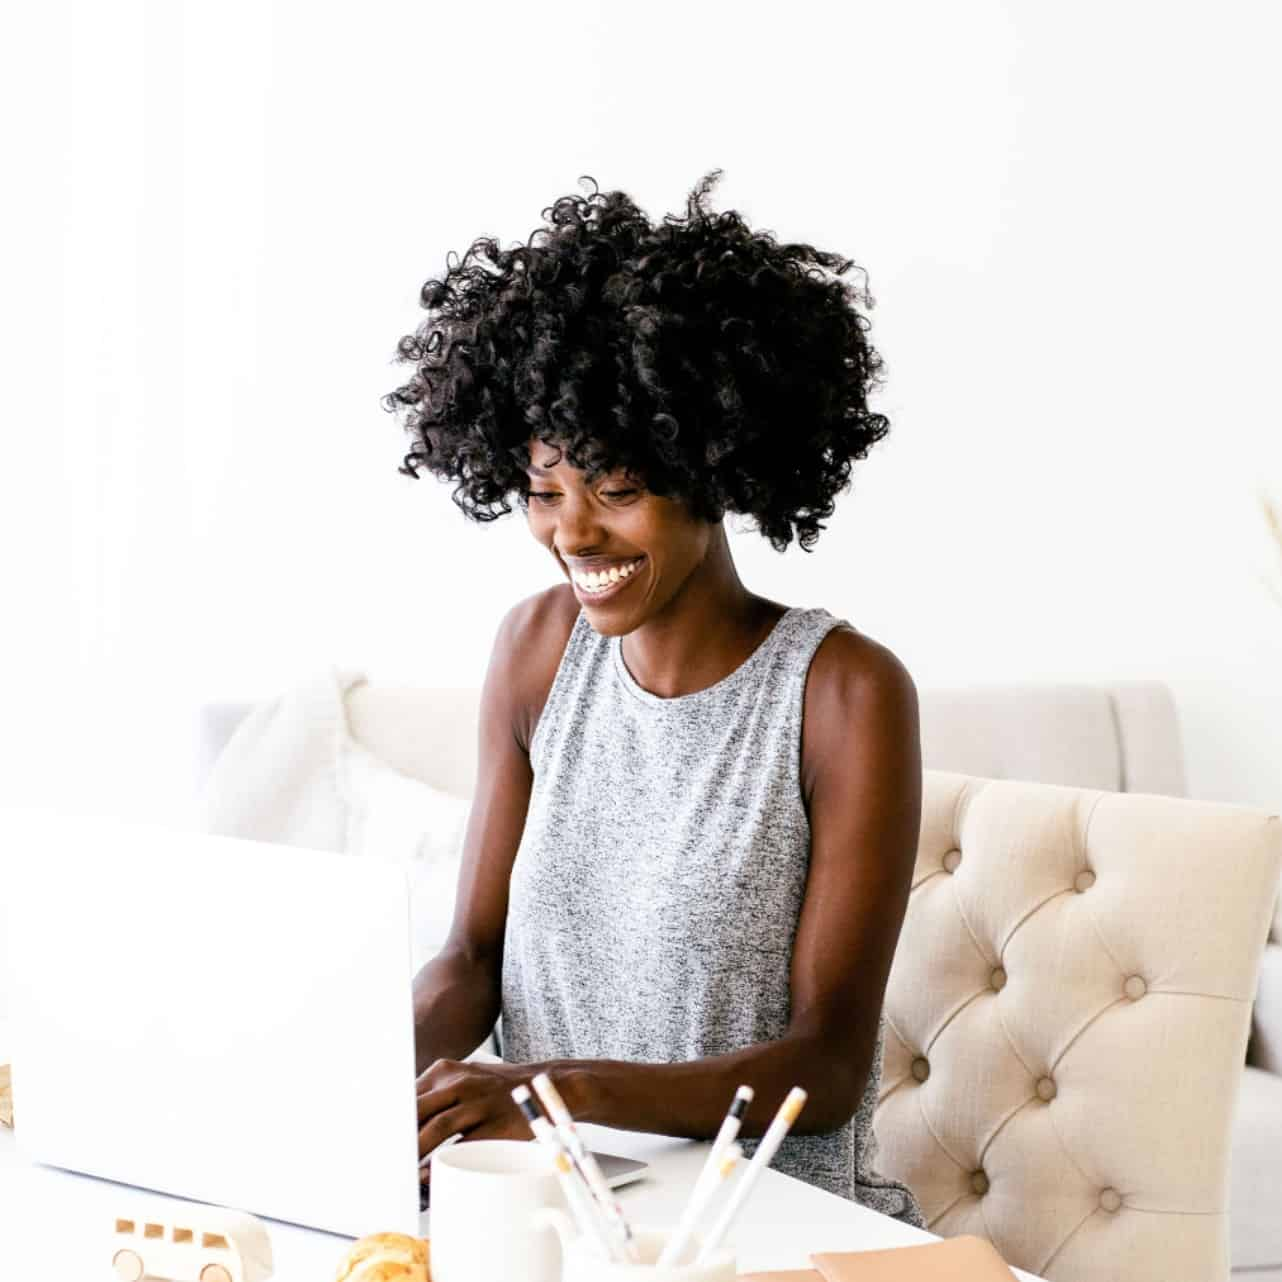 Image of a woman smiling as she uses her computer.